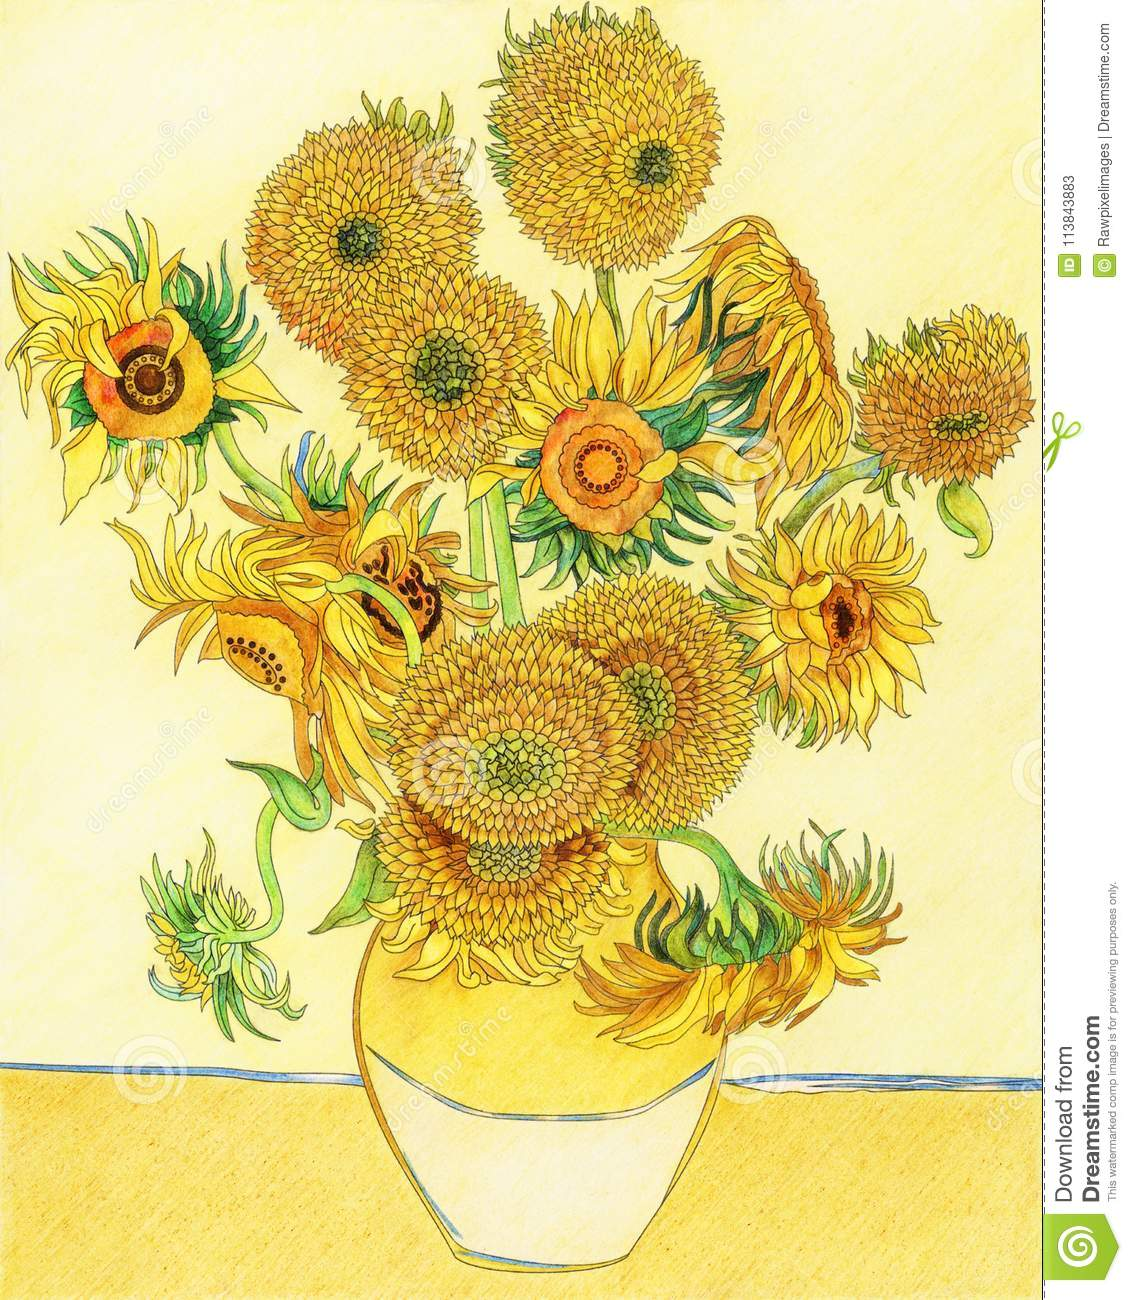 Van Gogh S Sunflower Adult Coloring Page Stock Illustration Illustration Of Famous Page 113843883